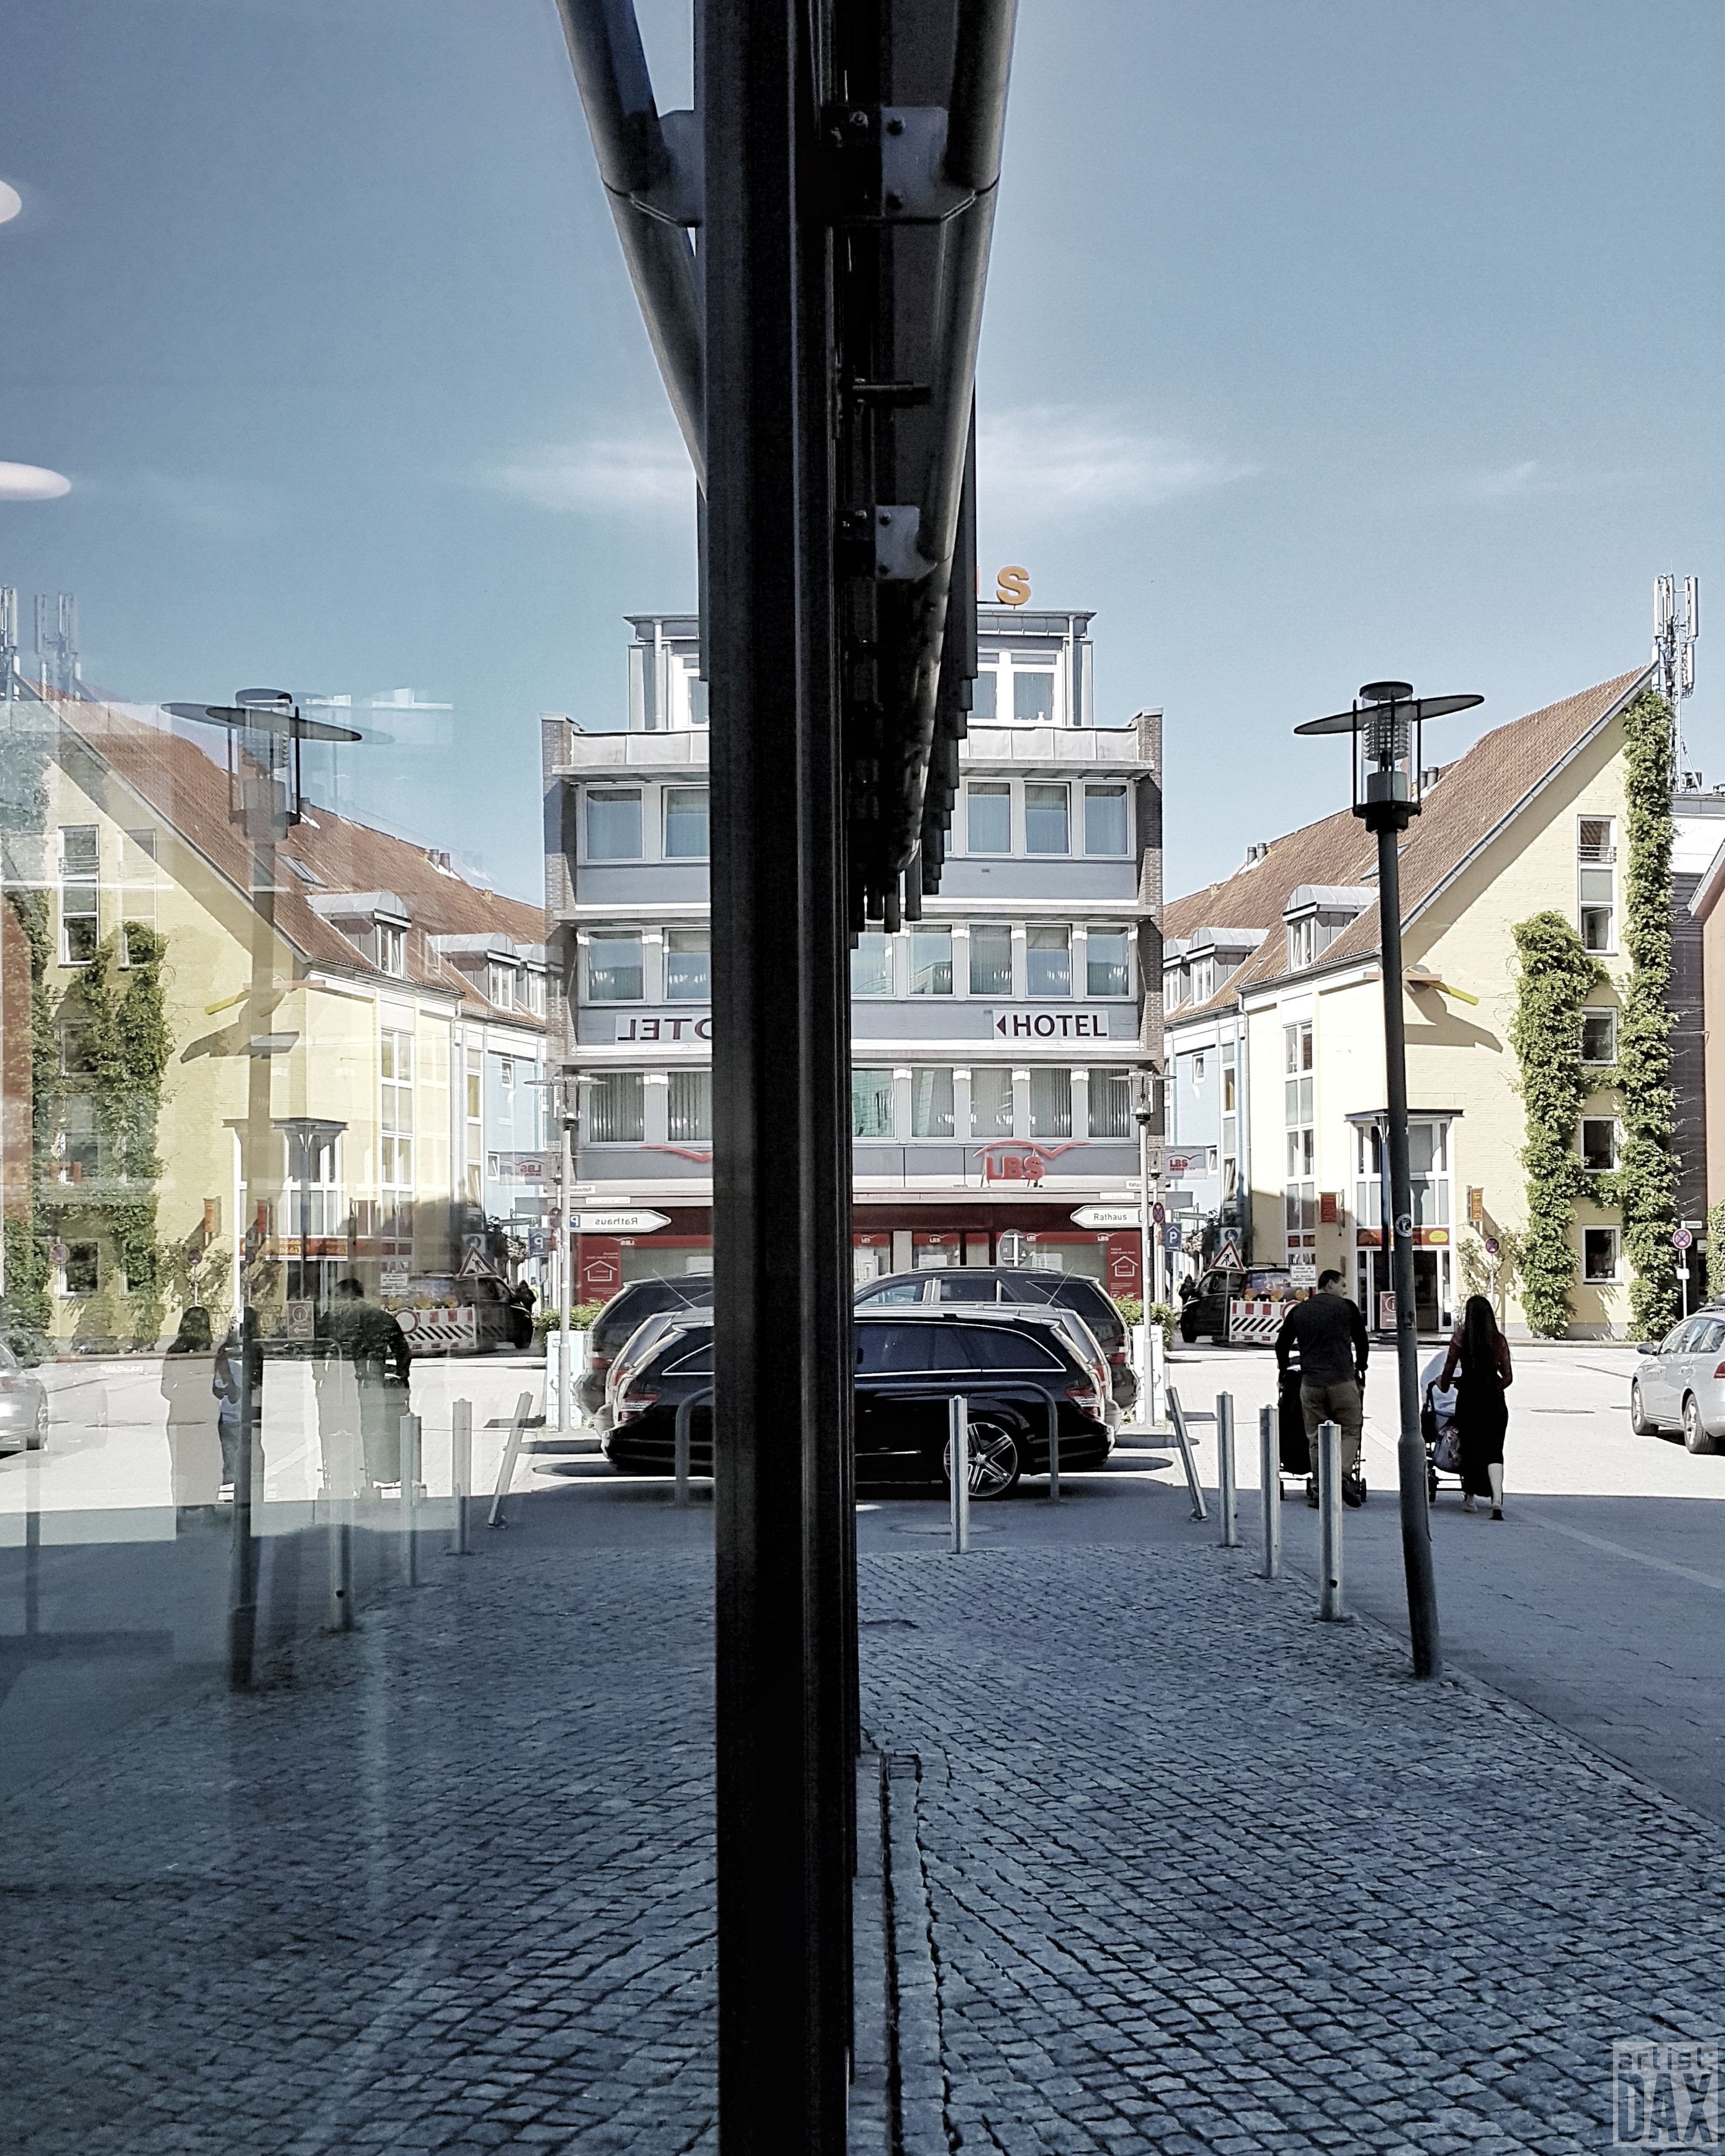 street, architecture, built structure, building exterior, transportation, sky, real people, road, city, outdoors, day, land vehicle